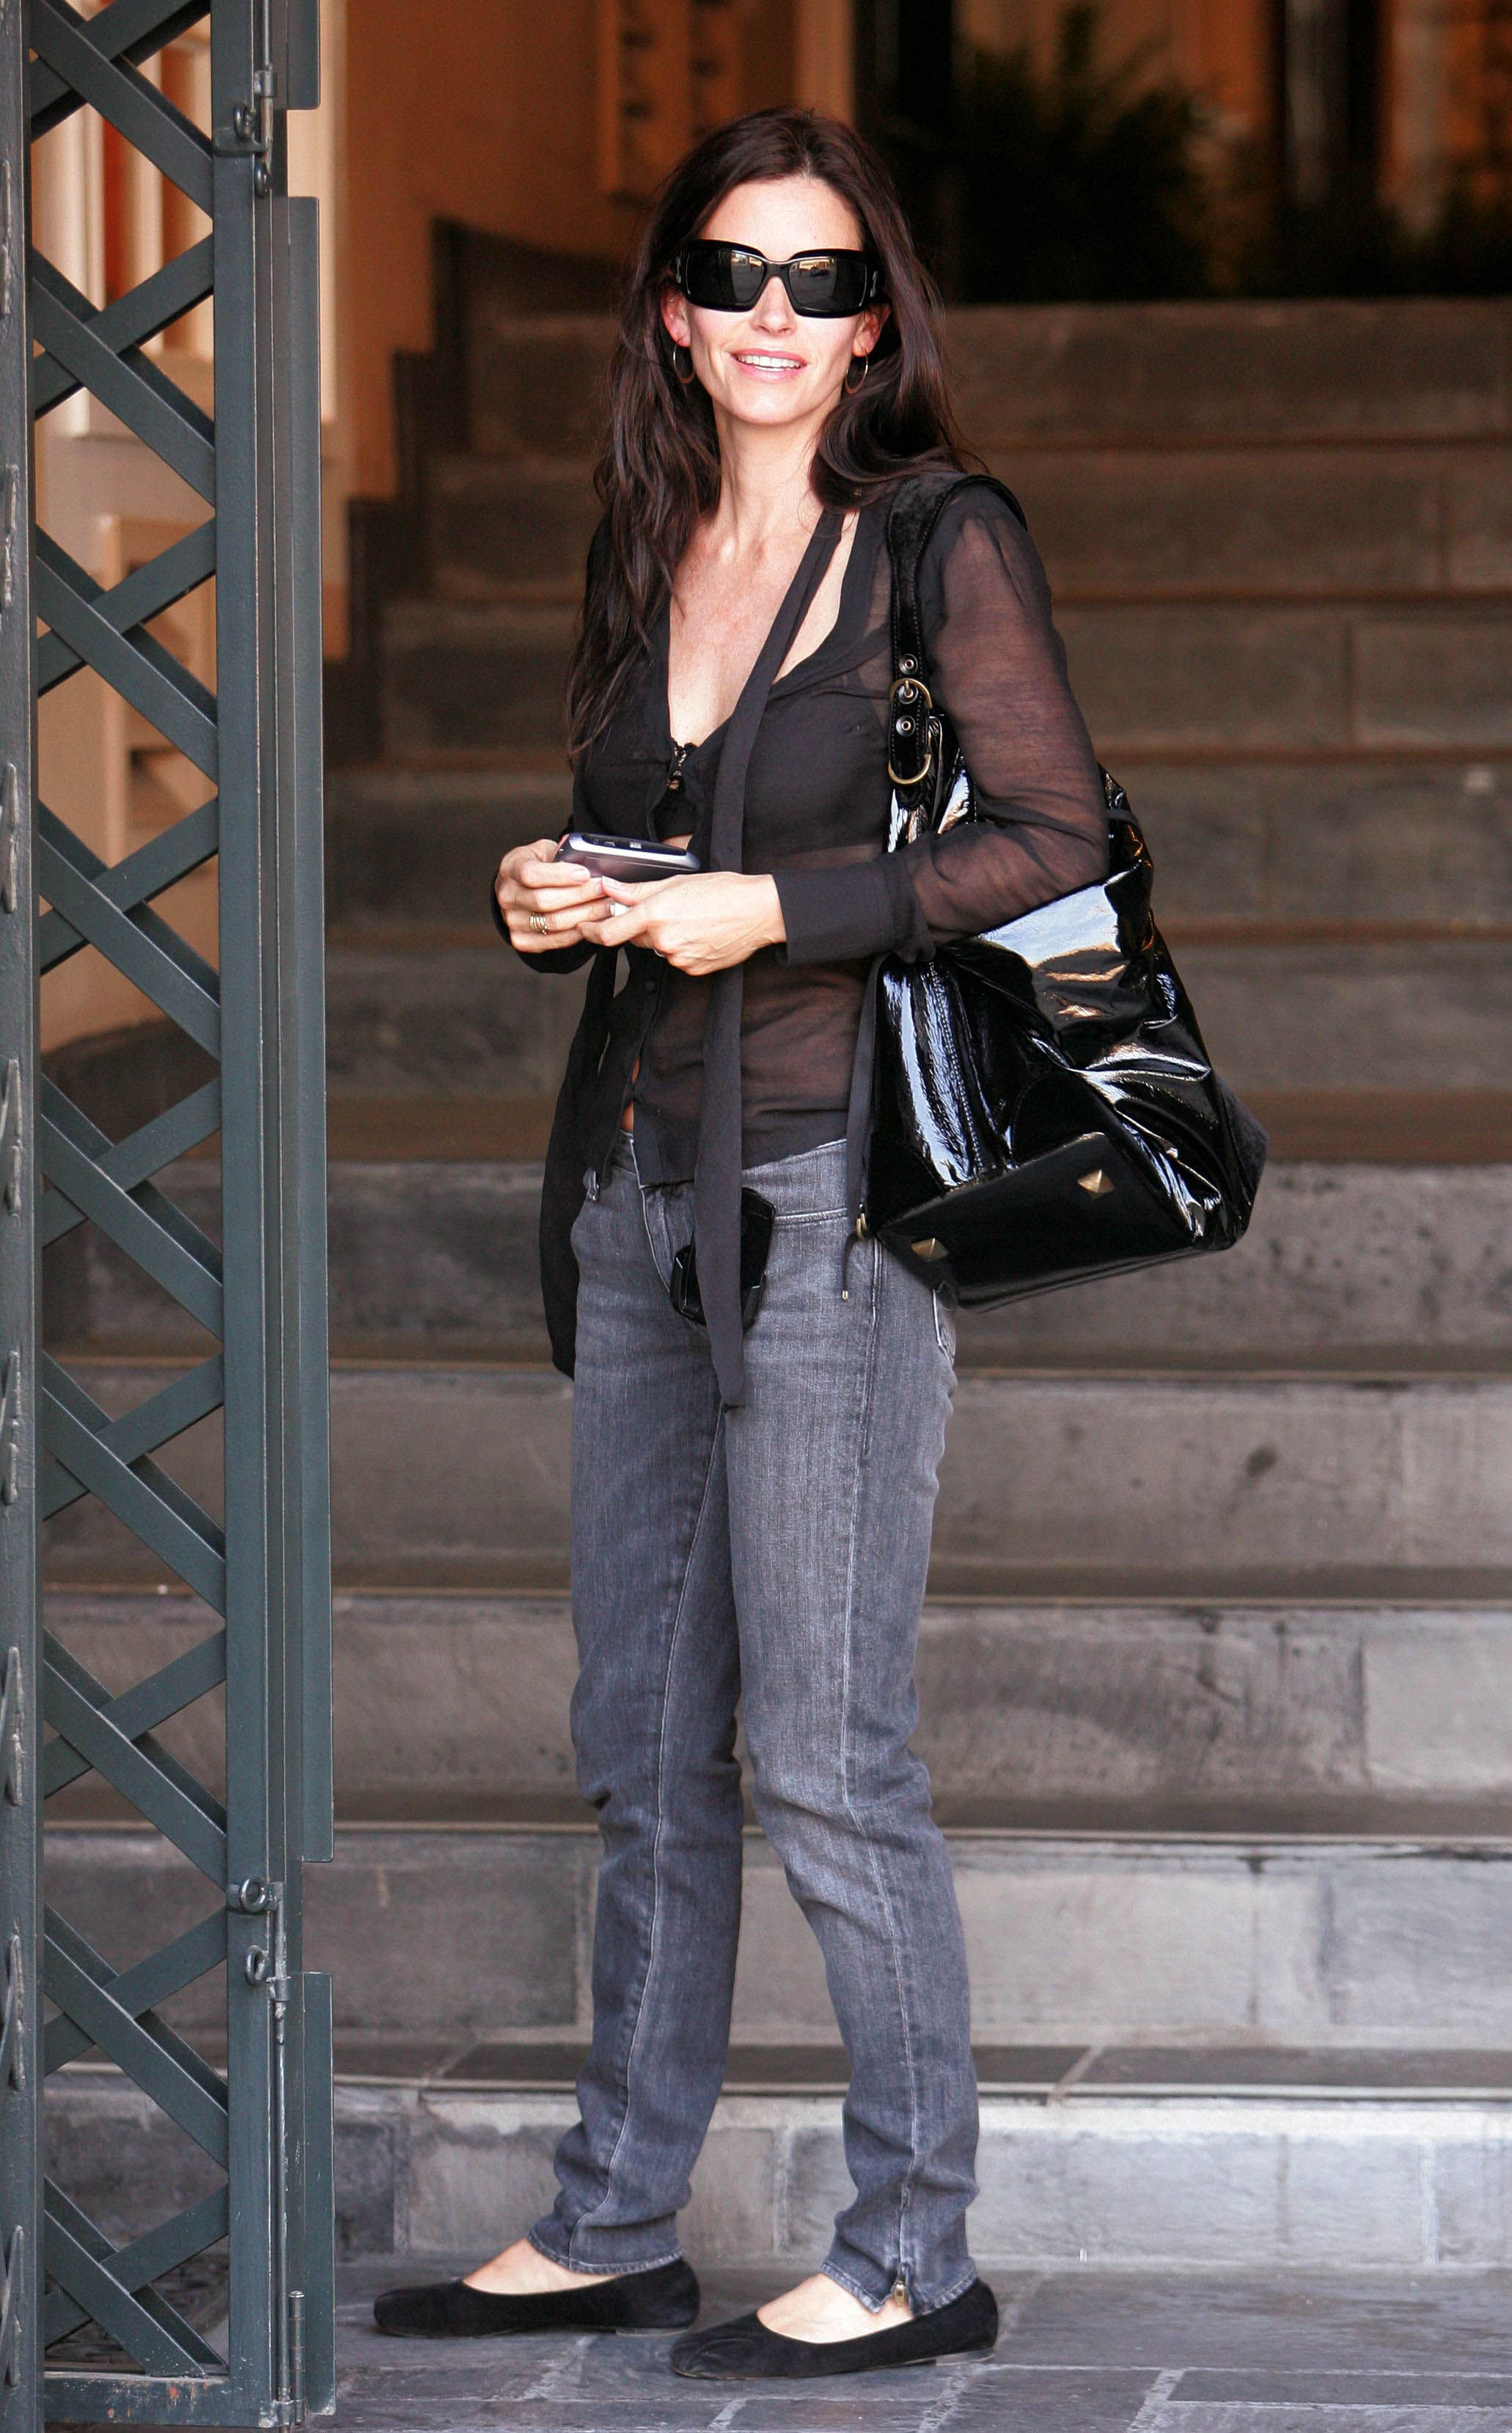 69755_Courteney_Cox_003_122_436lo